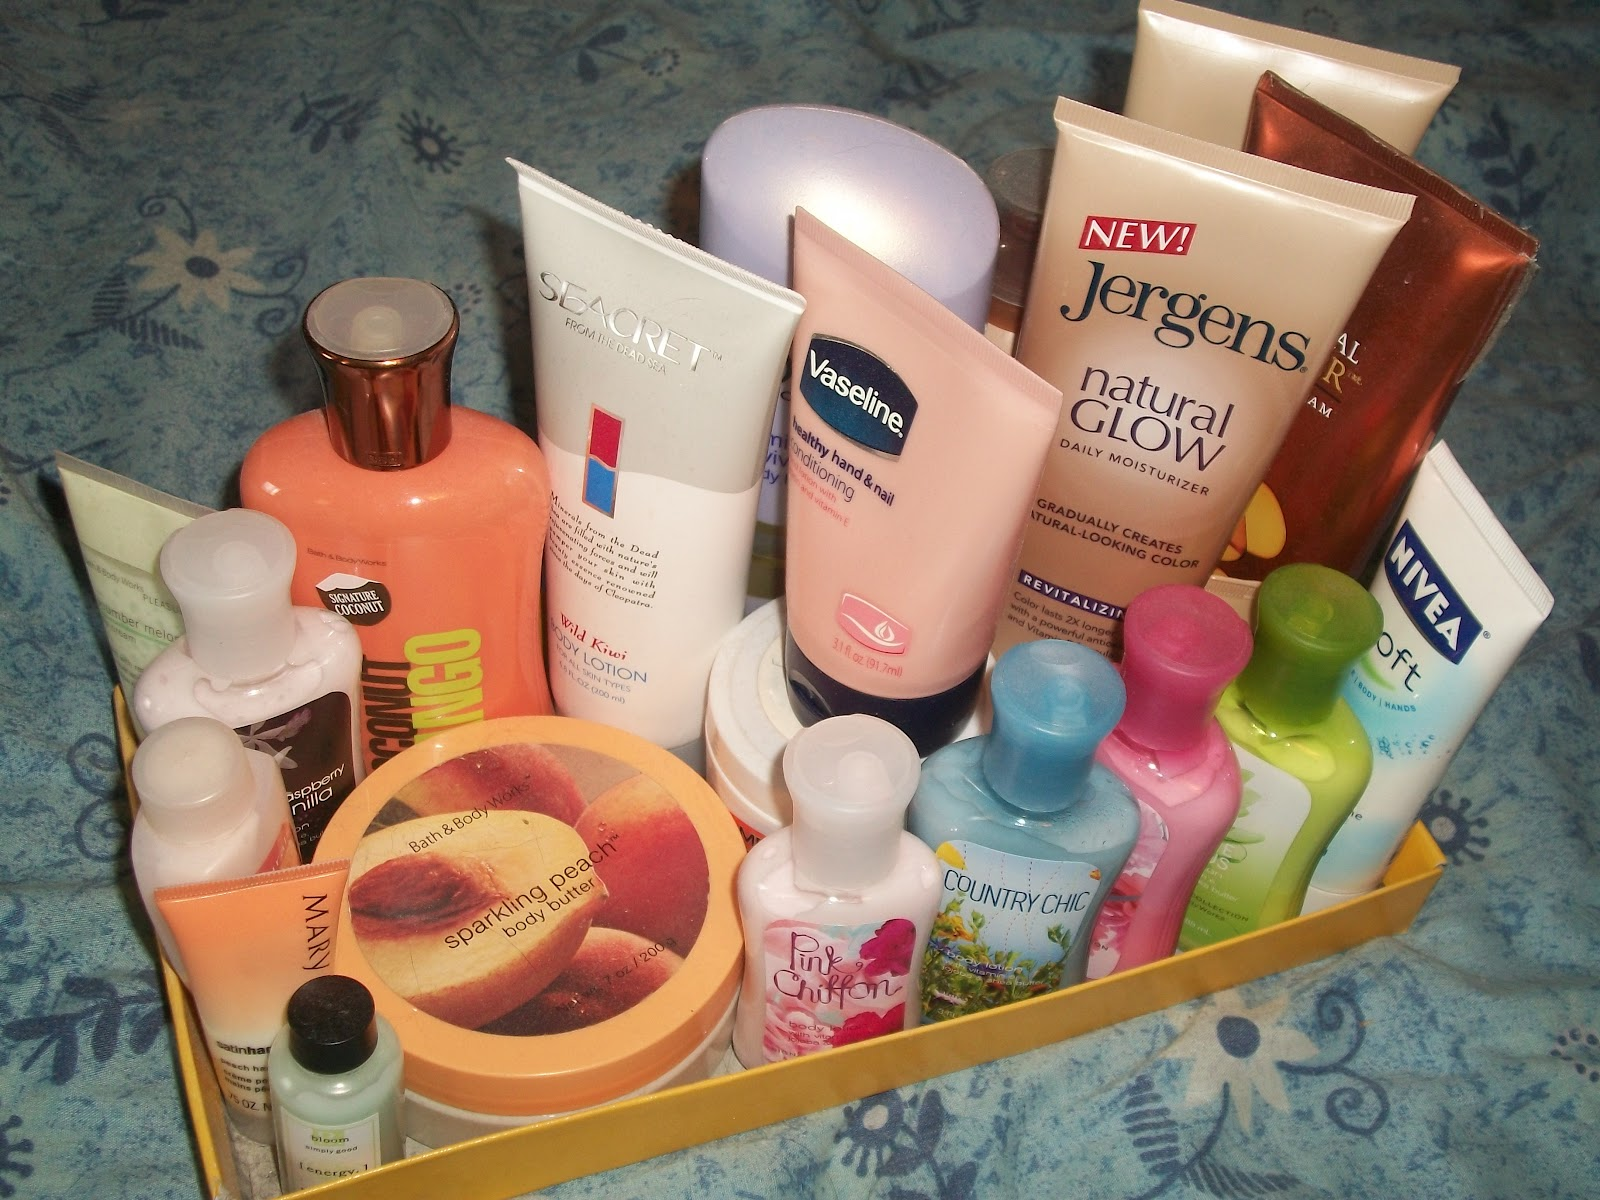 How do you organize your lotion products?